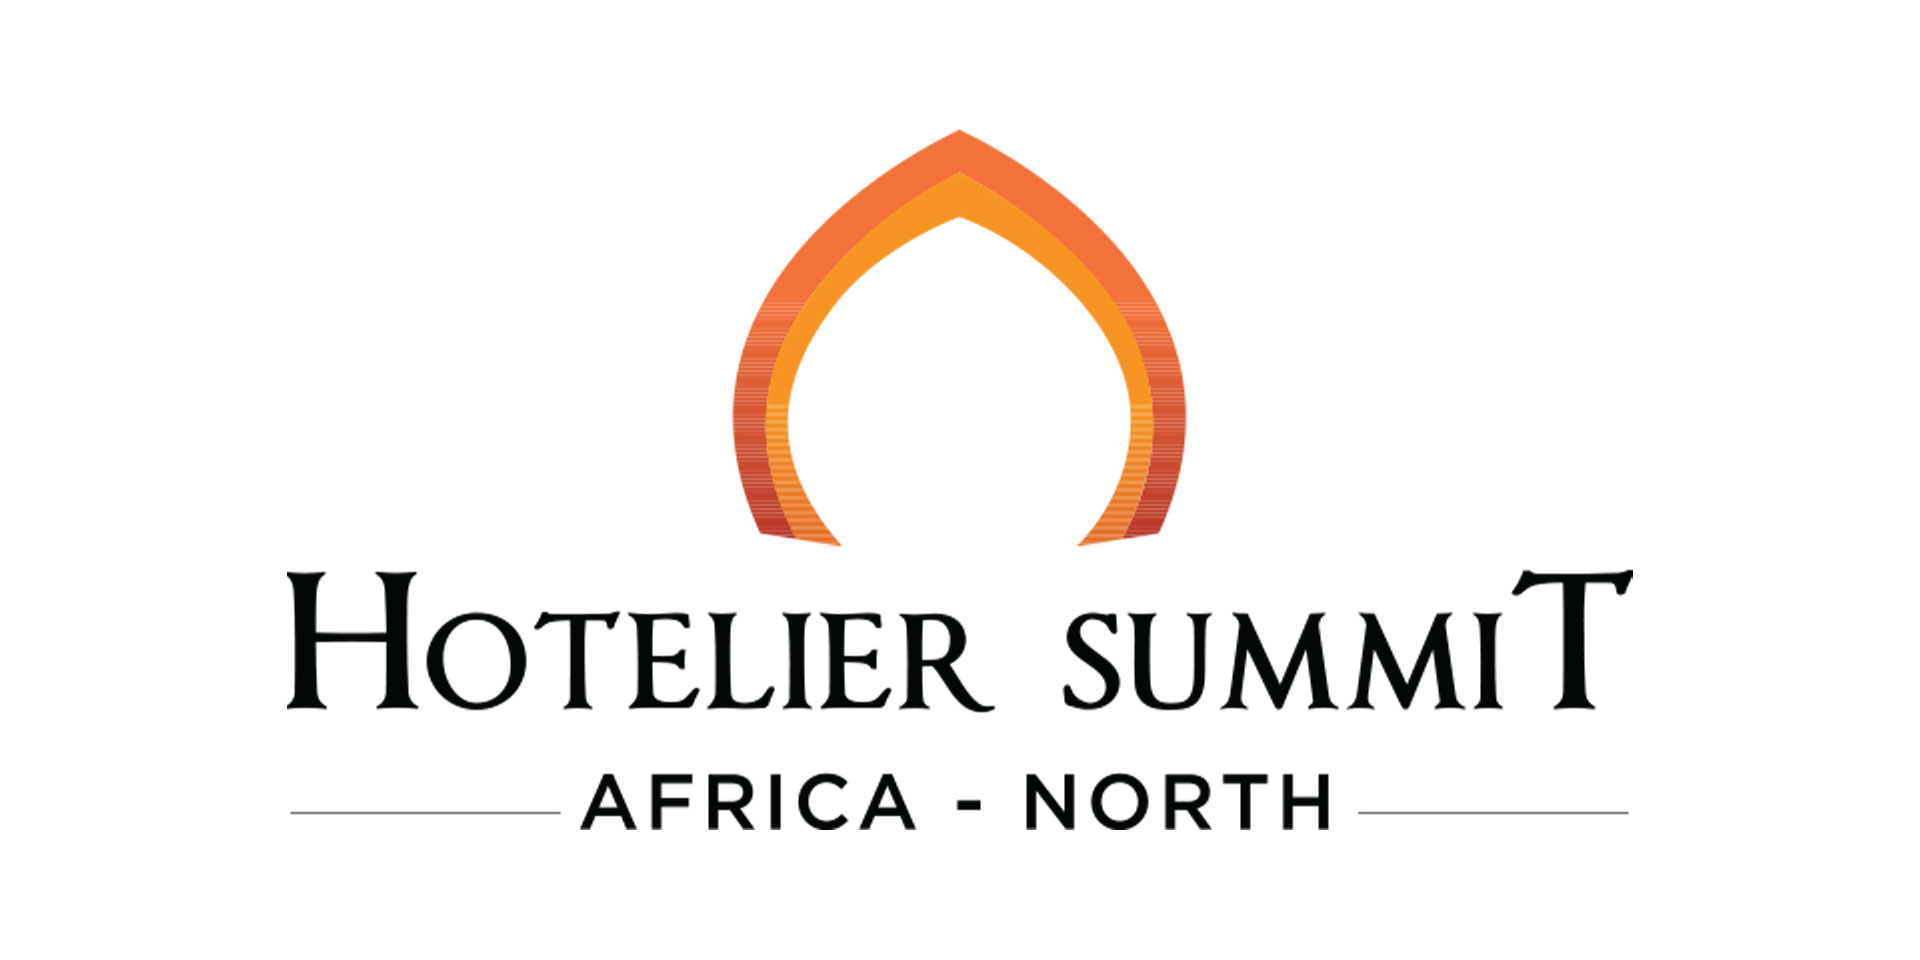 5th Hotelier Summit Africa North to explore convergence of hotel developments